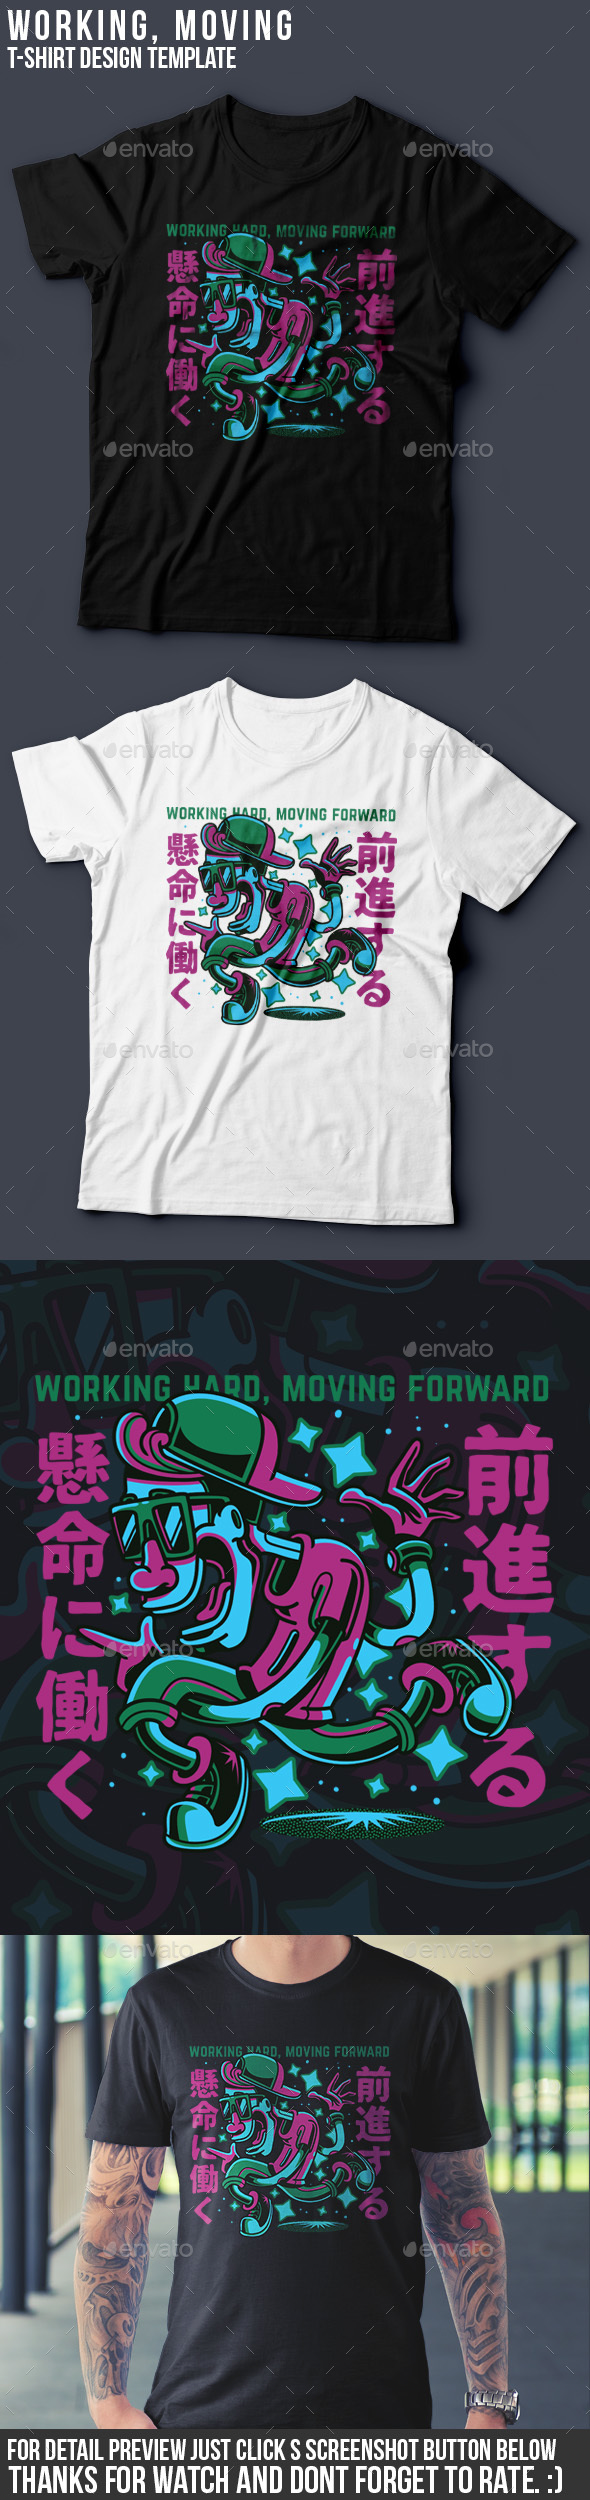 Working Moving T-Shirt Design - Events T-Shirts